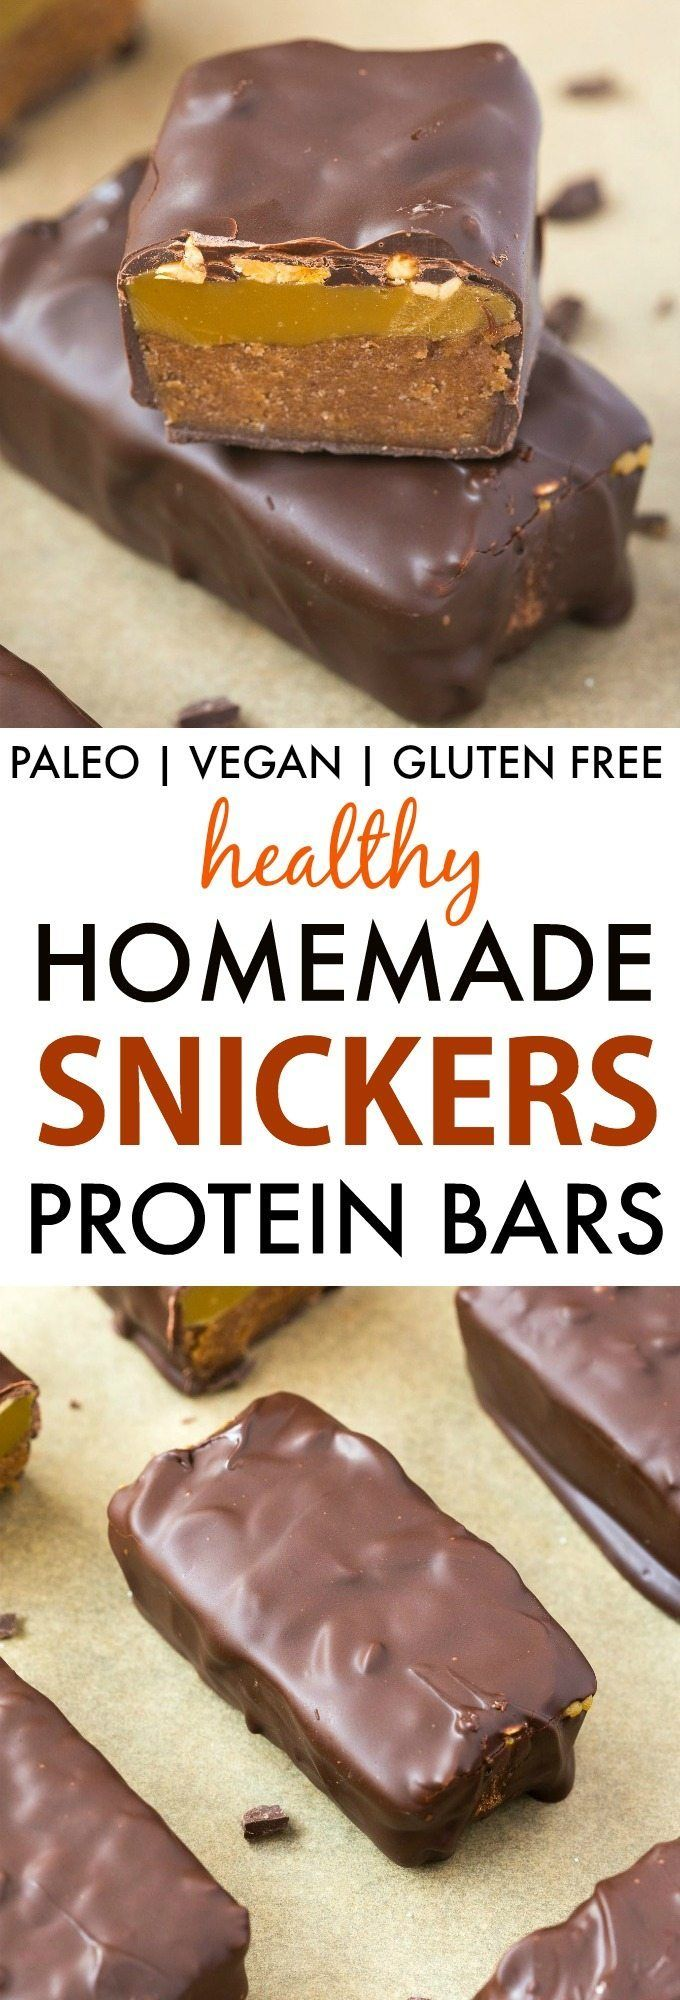 Healthy Homemade Snickers Protein Bars (Paleo, Vegan, Gluten Free)